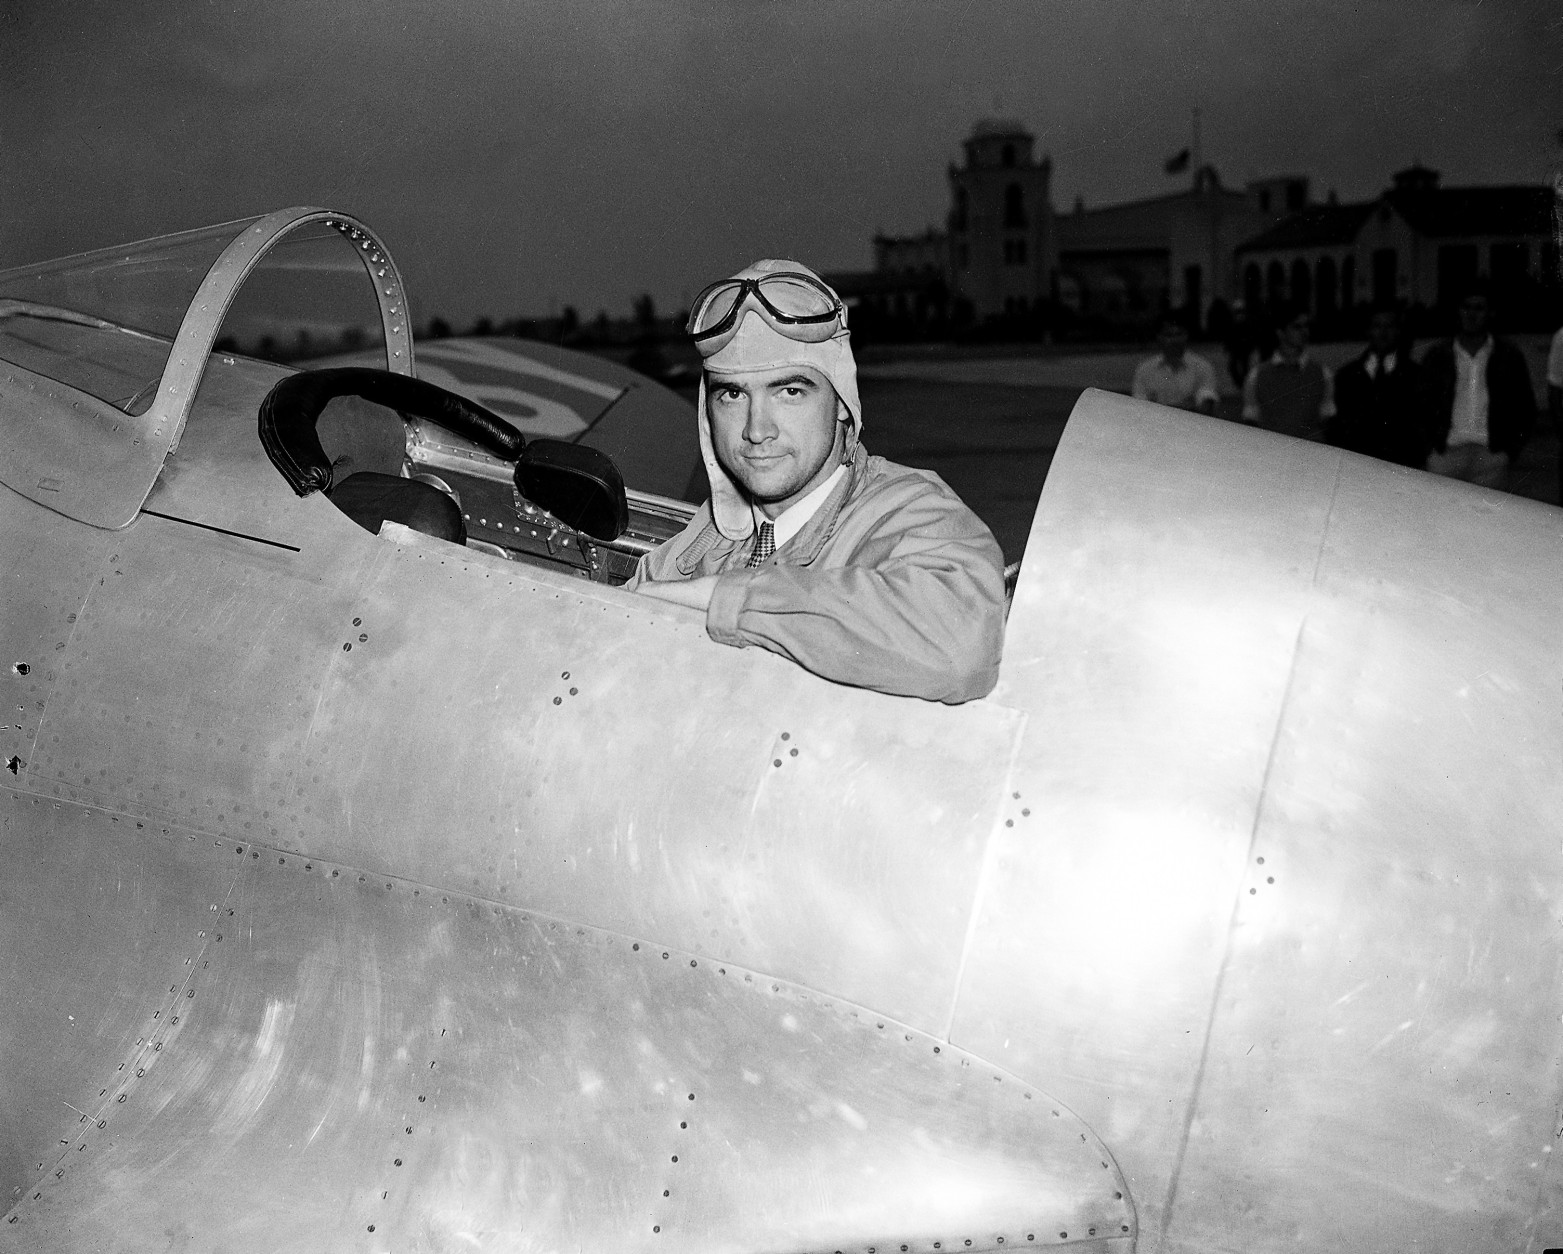 Howard Hughes, industrialist, film producer and pilot, poses in the cockpit of his new racing plane after a test flight in Los Angeles August 17, 1935.  The plane, nearly two years in construction at a cost believed to be more than $100,000, was to be piloted by Hughes in the Bendix race from Los Angeles to Cleveland. (AP Photo)